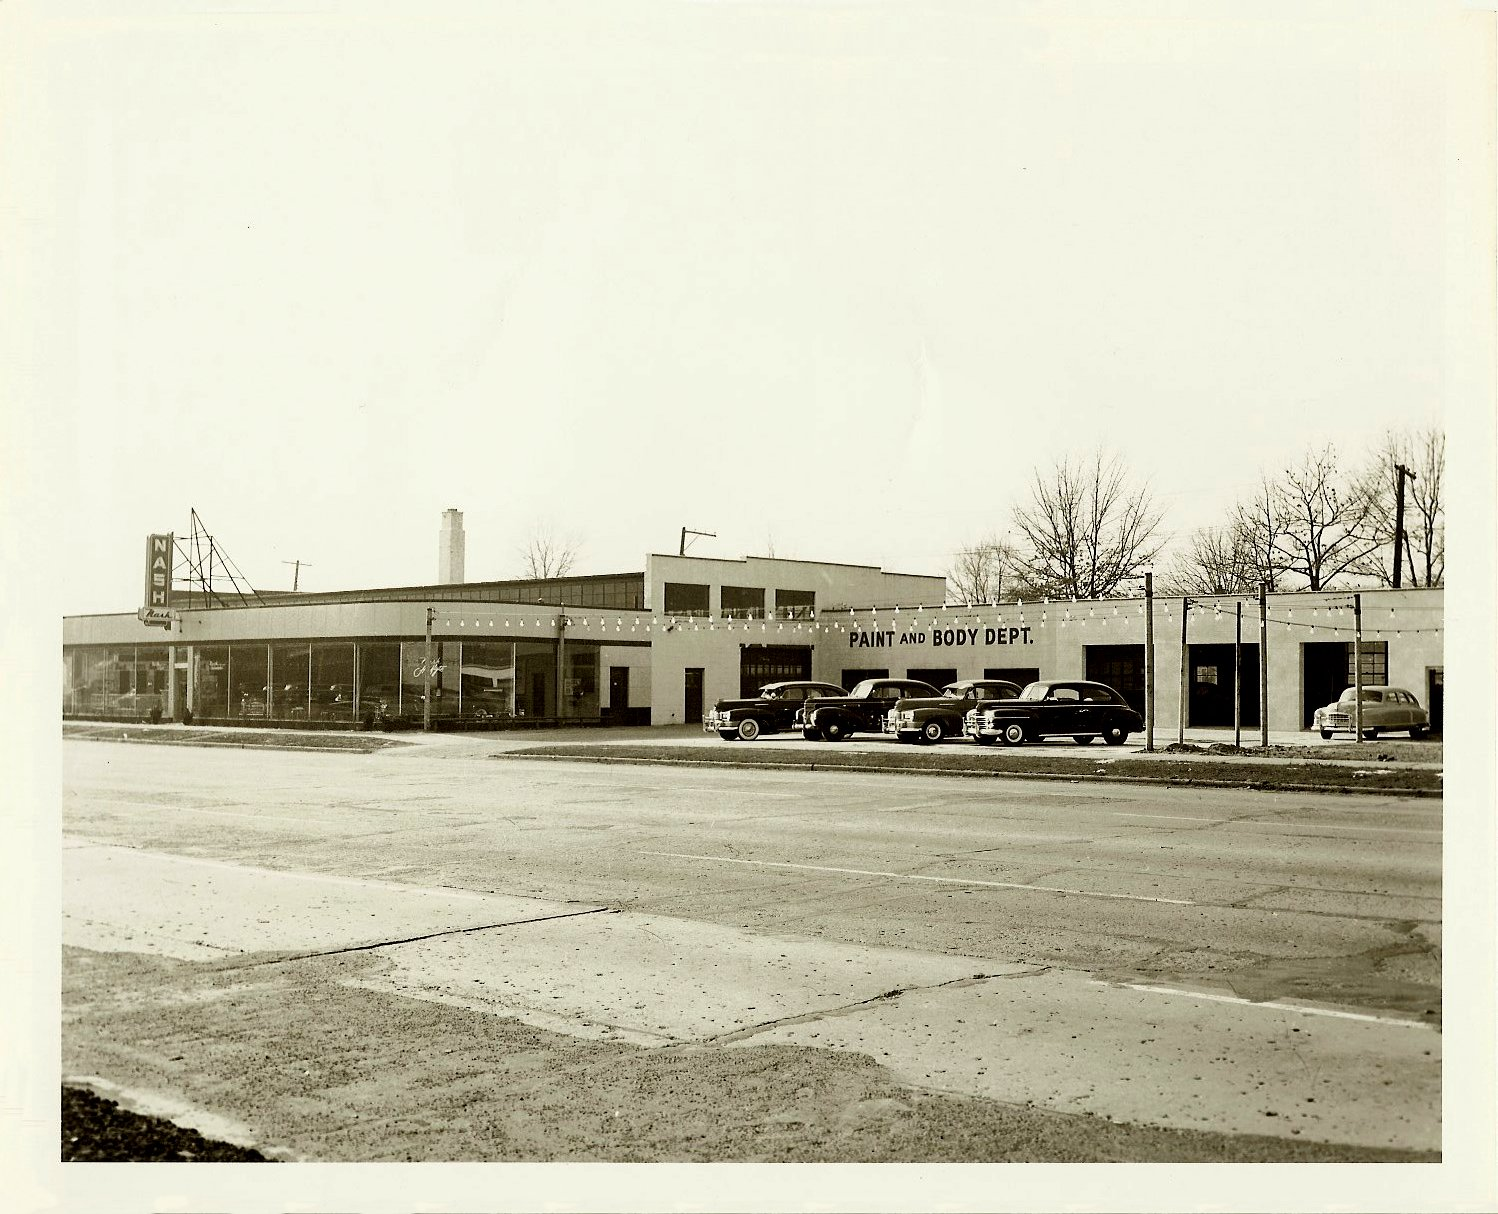 Livernois Company NASH Automobile Dealership Detroit, Michigan ca. 1948-49 10″x8″ Black & White photograph